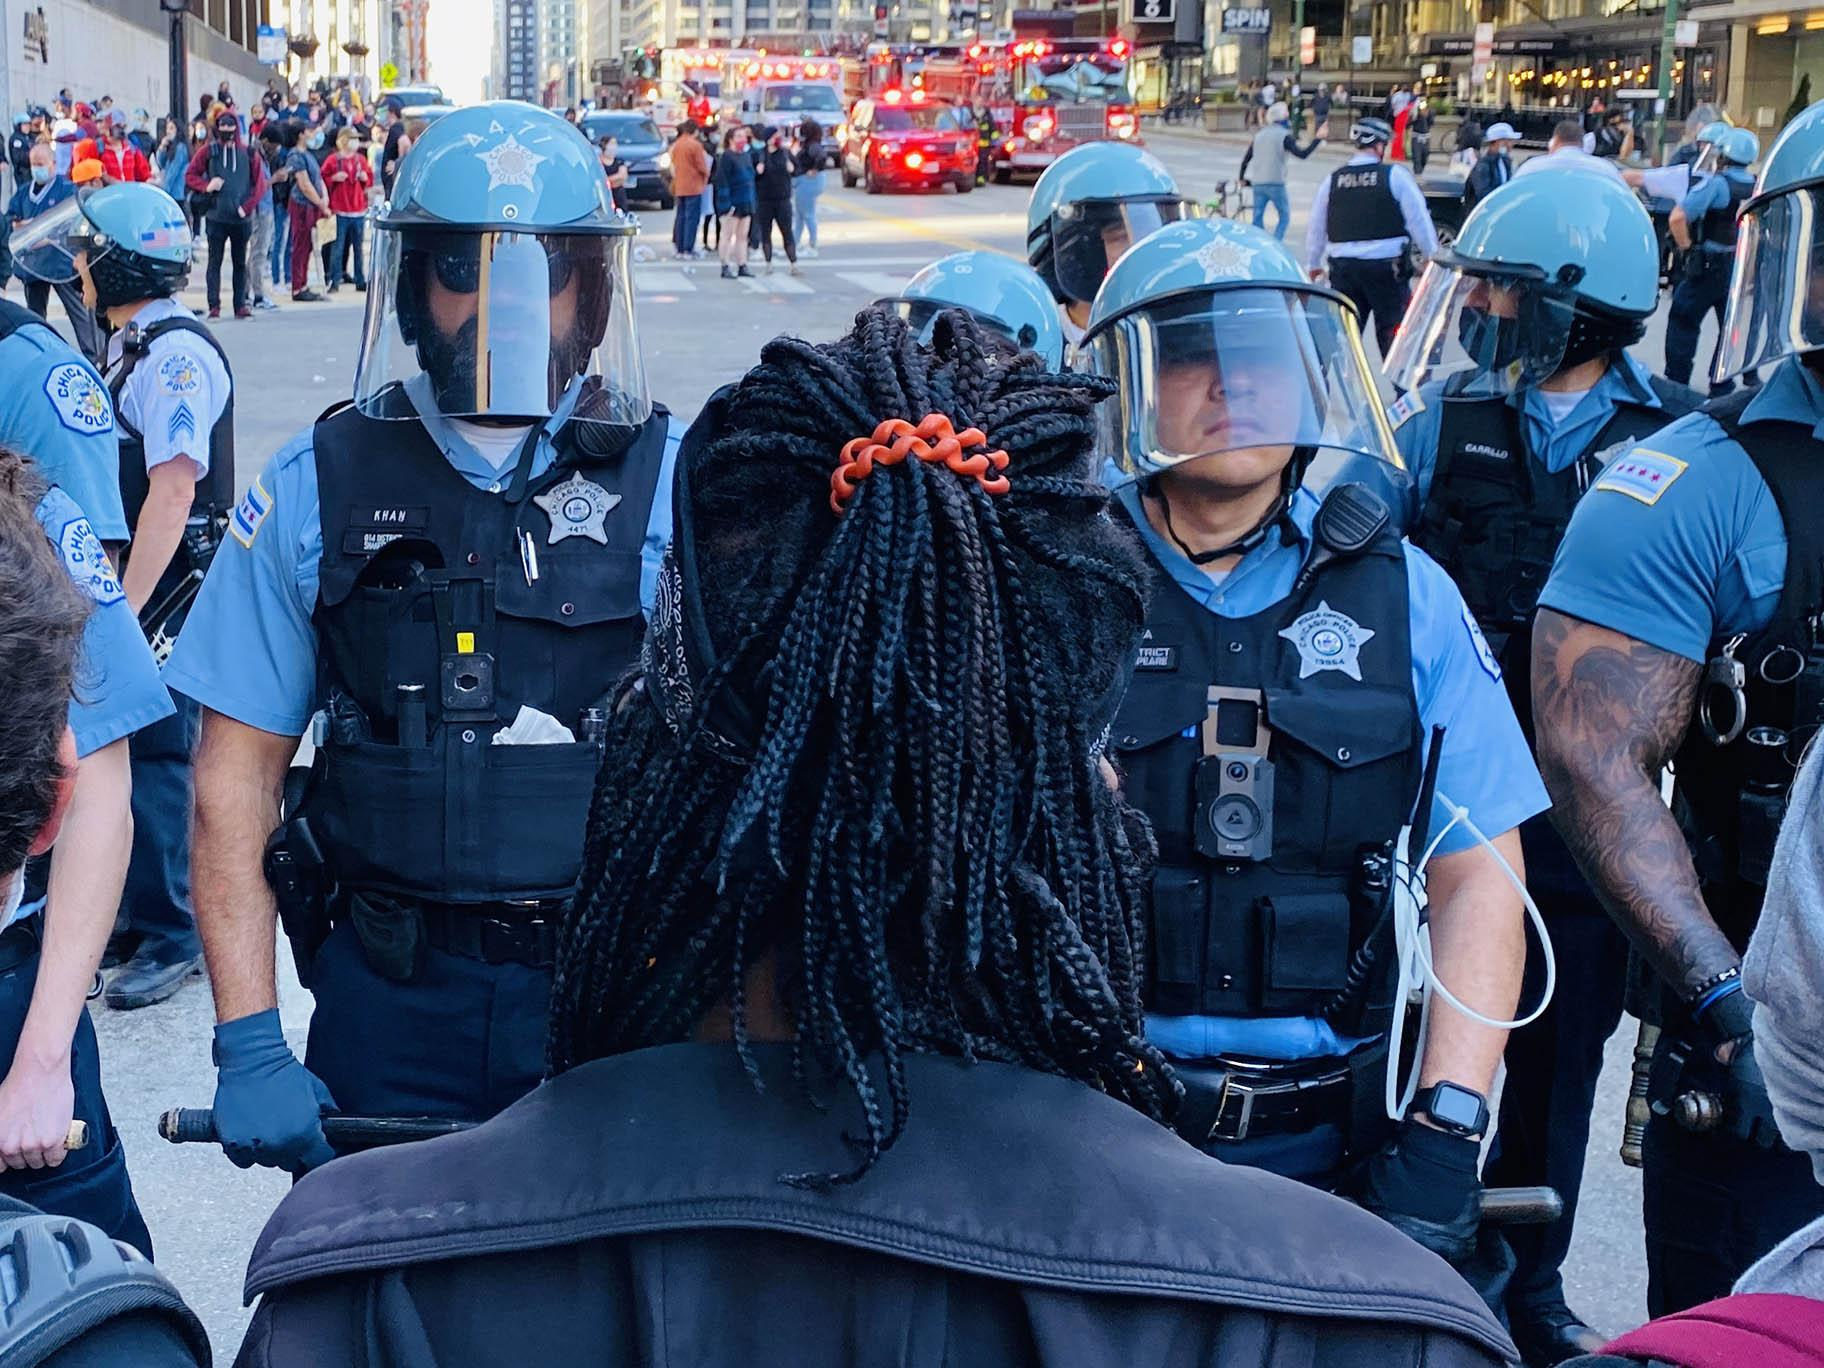 A protester faces a line of police officers in Chicago on Saturday, May 30, 2020. (Hugo Balta / WTTW News)